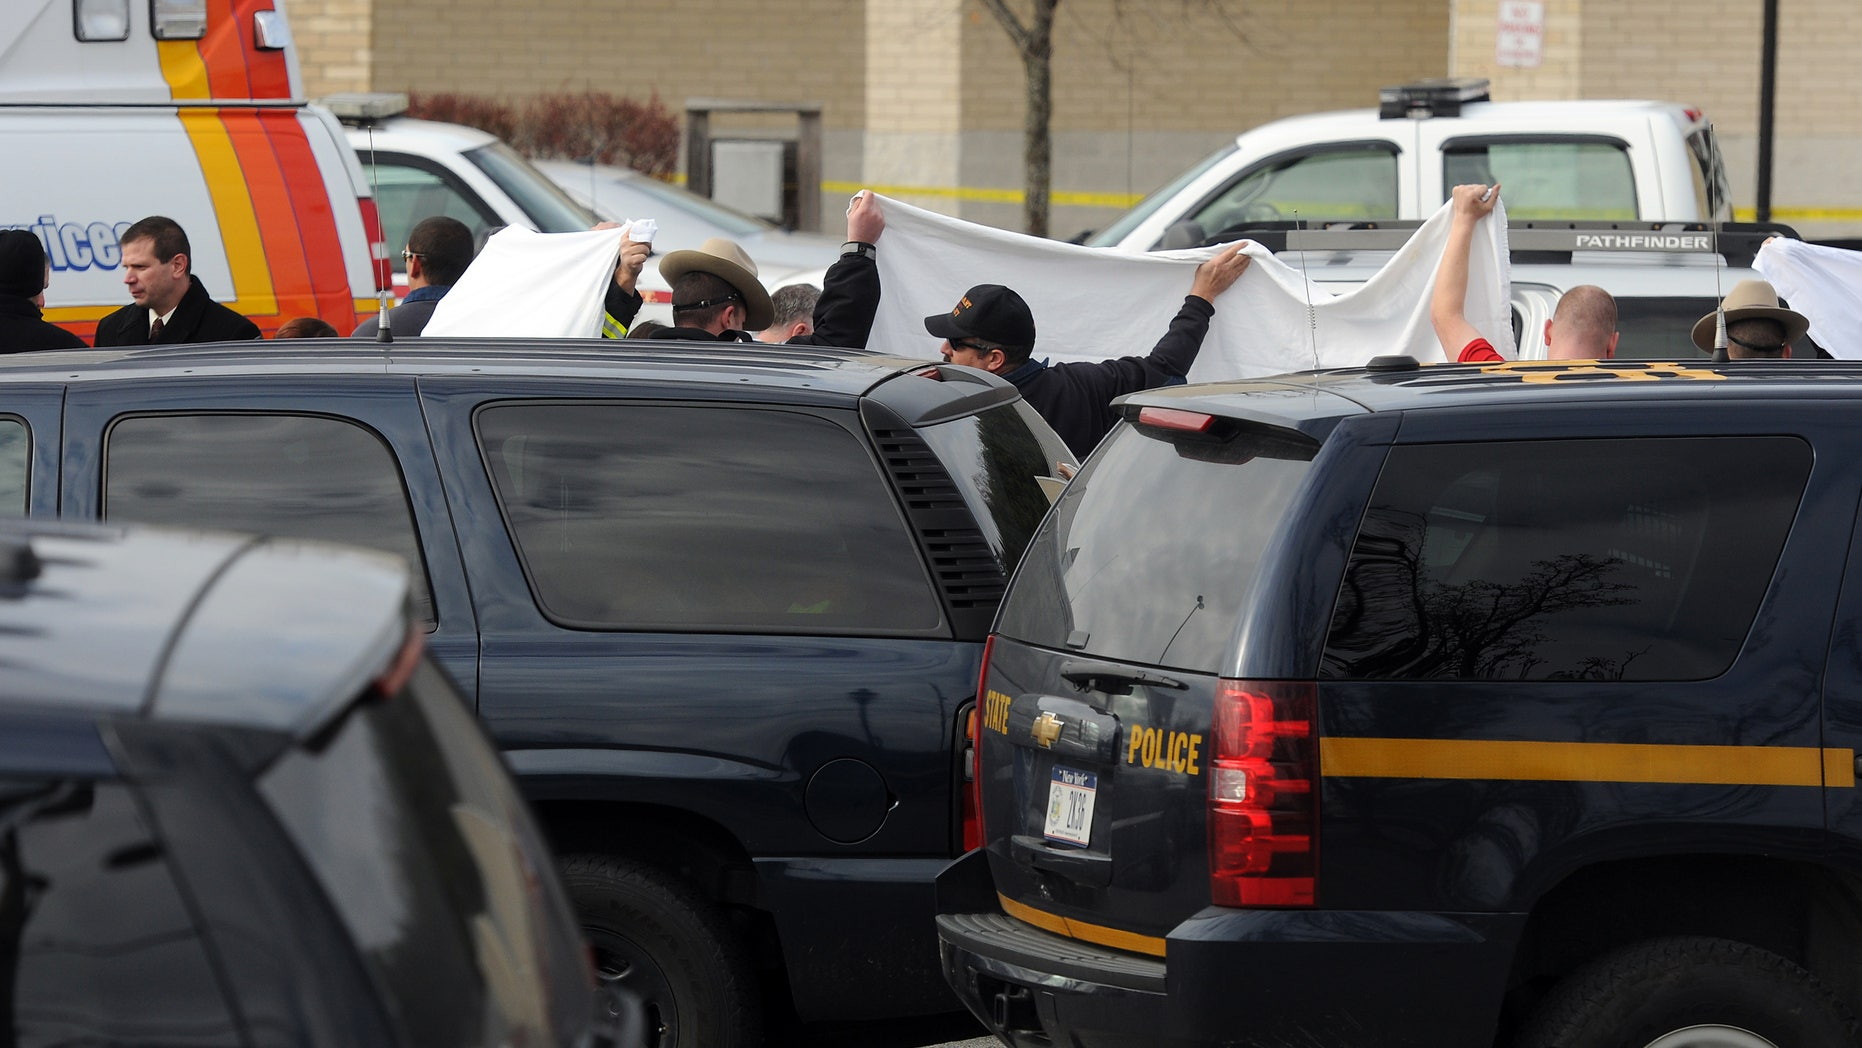 In this photo taken on Thursday, Nov. 21, 2013, State police investigate near a vehicle in a supermarket parking lot in Pleasant Valley, N,Y., where 49-year-old pharmacist Abbas Lodhi and one of sons were found shot dead. Police say they later found the body of the man's other son at the family's nearby home. Police are continuing to search for the man's 43-year-old wife Sarwat Lodhi, who is missing and has unspecified injuries. They describe her as a victim in the case. (AP Photo/The Journal, Darryl Bautista) NO SALES. MIDDLETOWN OUT, KINGSTON OUT.